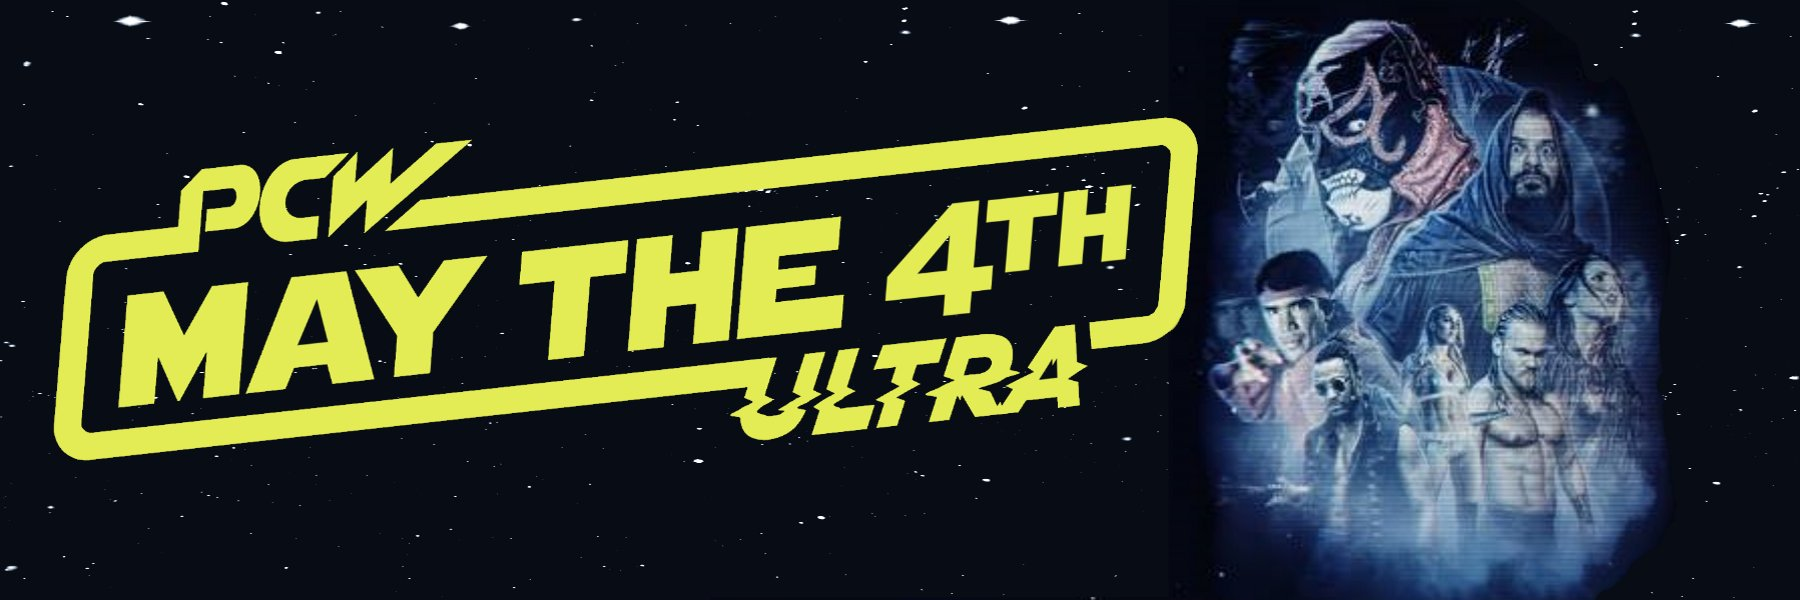 PCW ULTRA | MAY THE 4TH: Subscribe $4.99 mo. // Rent $2.99 // Buy $9.99